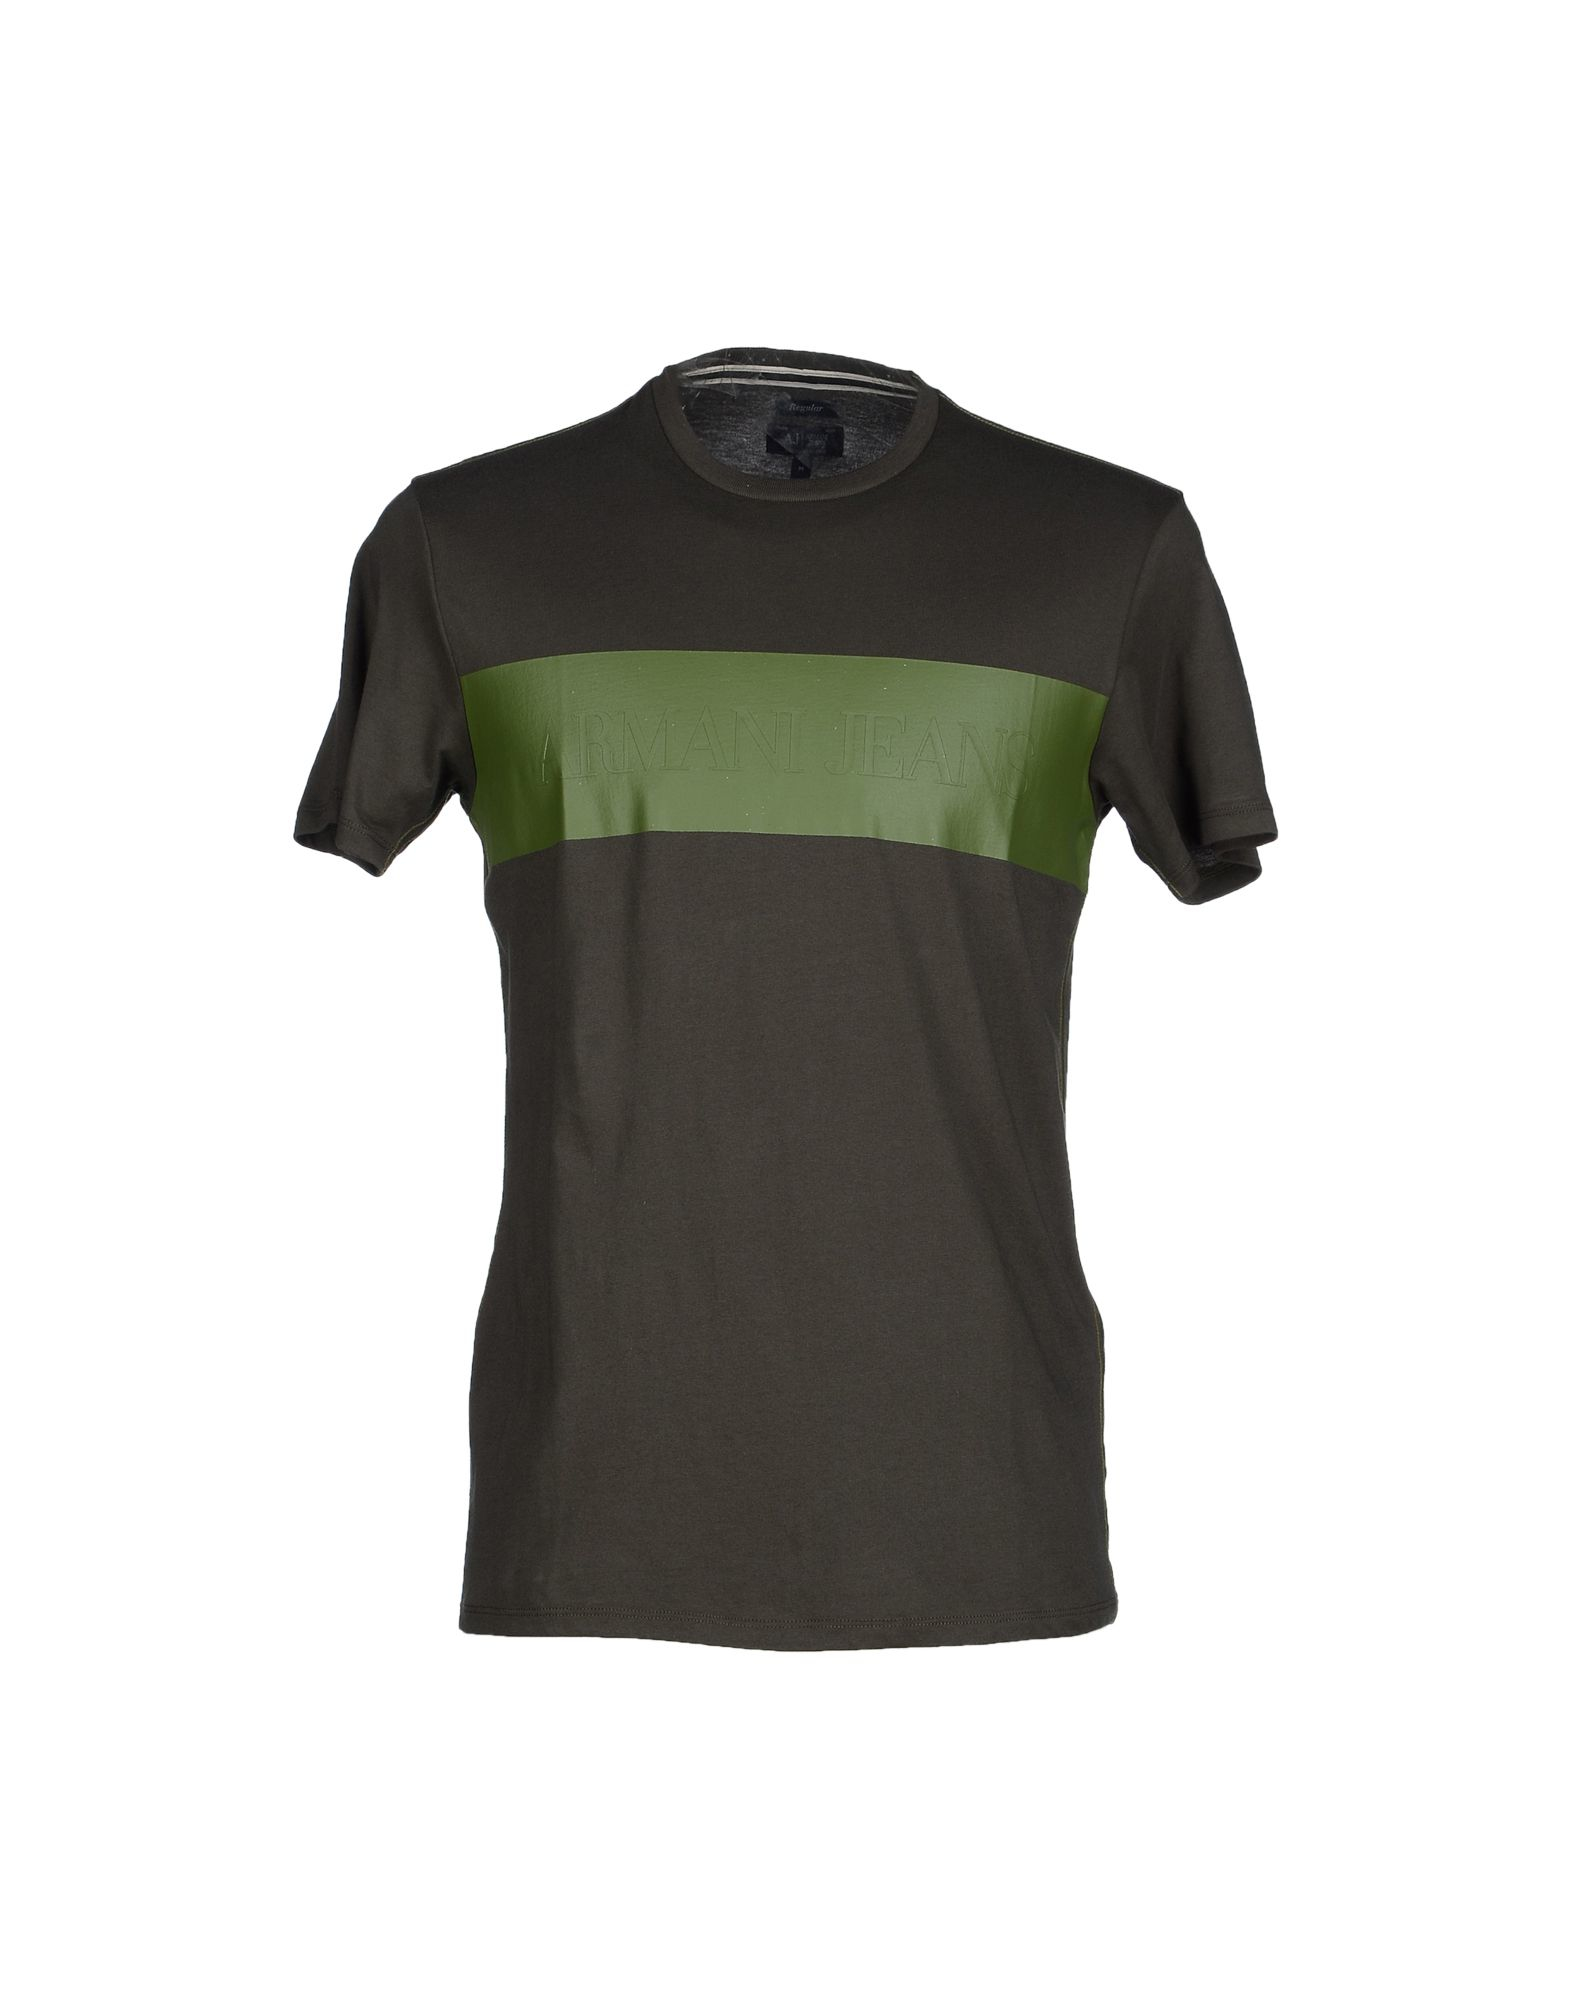 armani jeans t shirt in green for men lyst. Black Bedroom Furniture Sets. Home Design Ideas